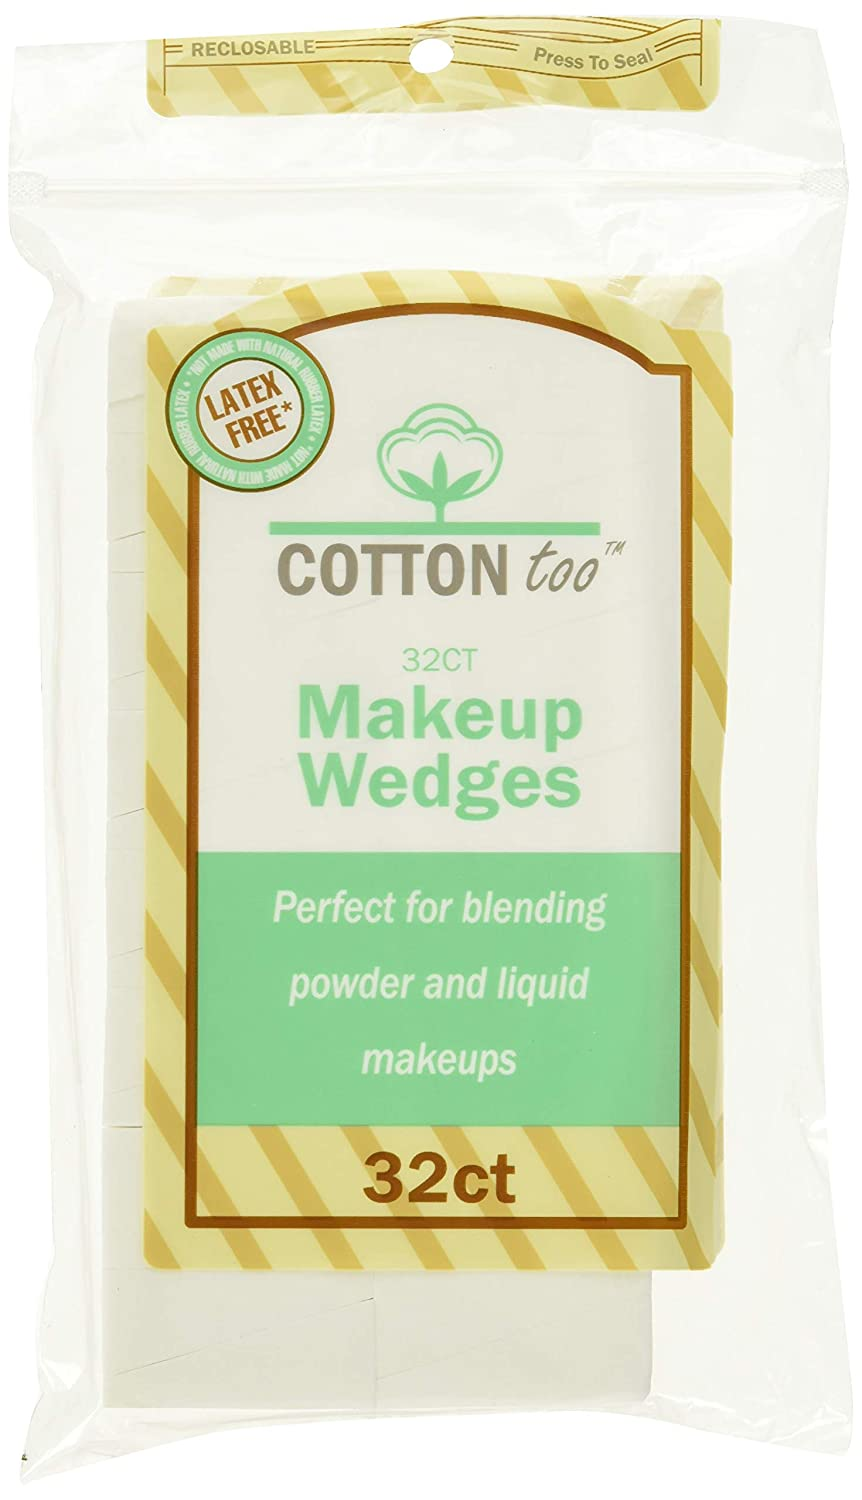 Cotton Too Premium 32 Count Latex-free Cosmetic Wedges, 6 Pack : Beauty